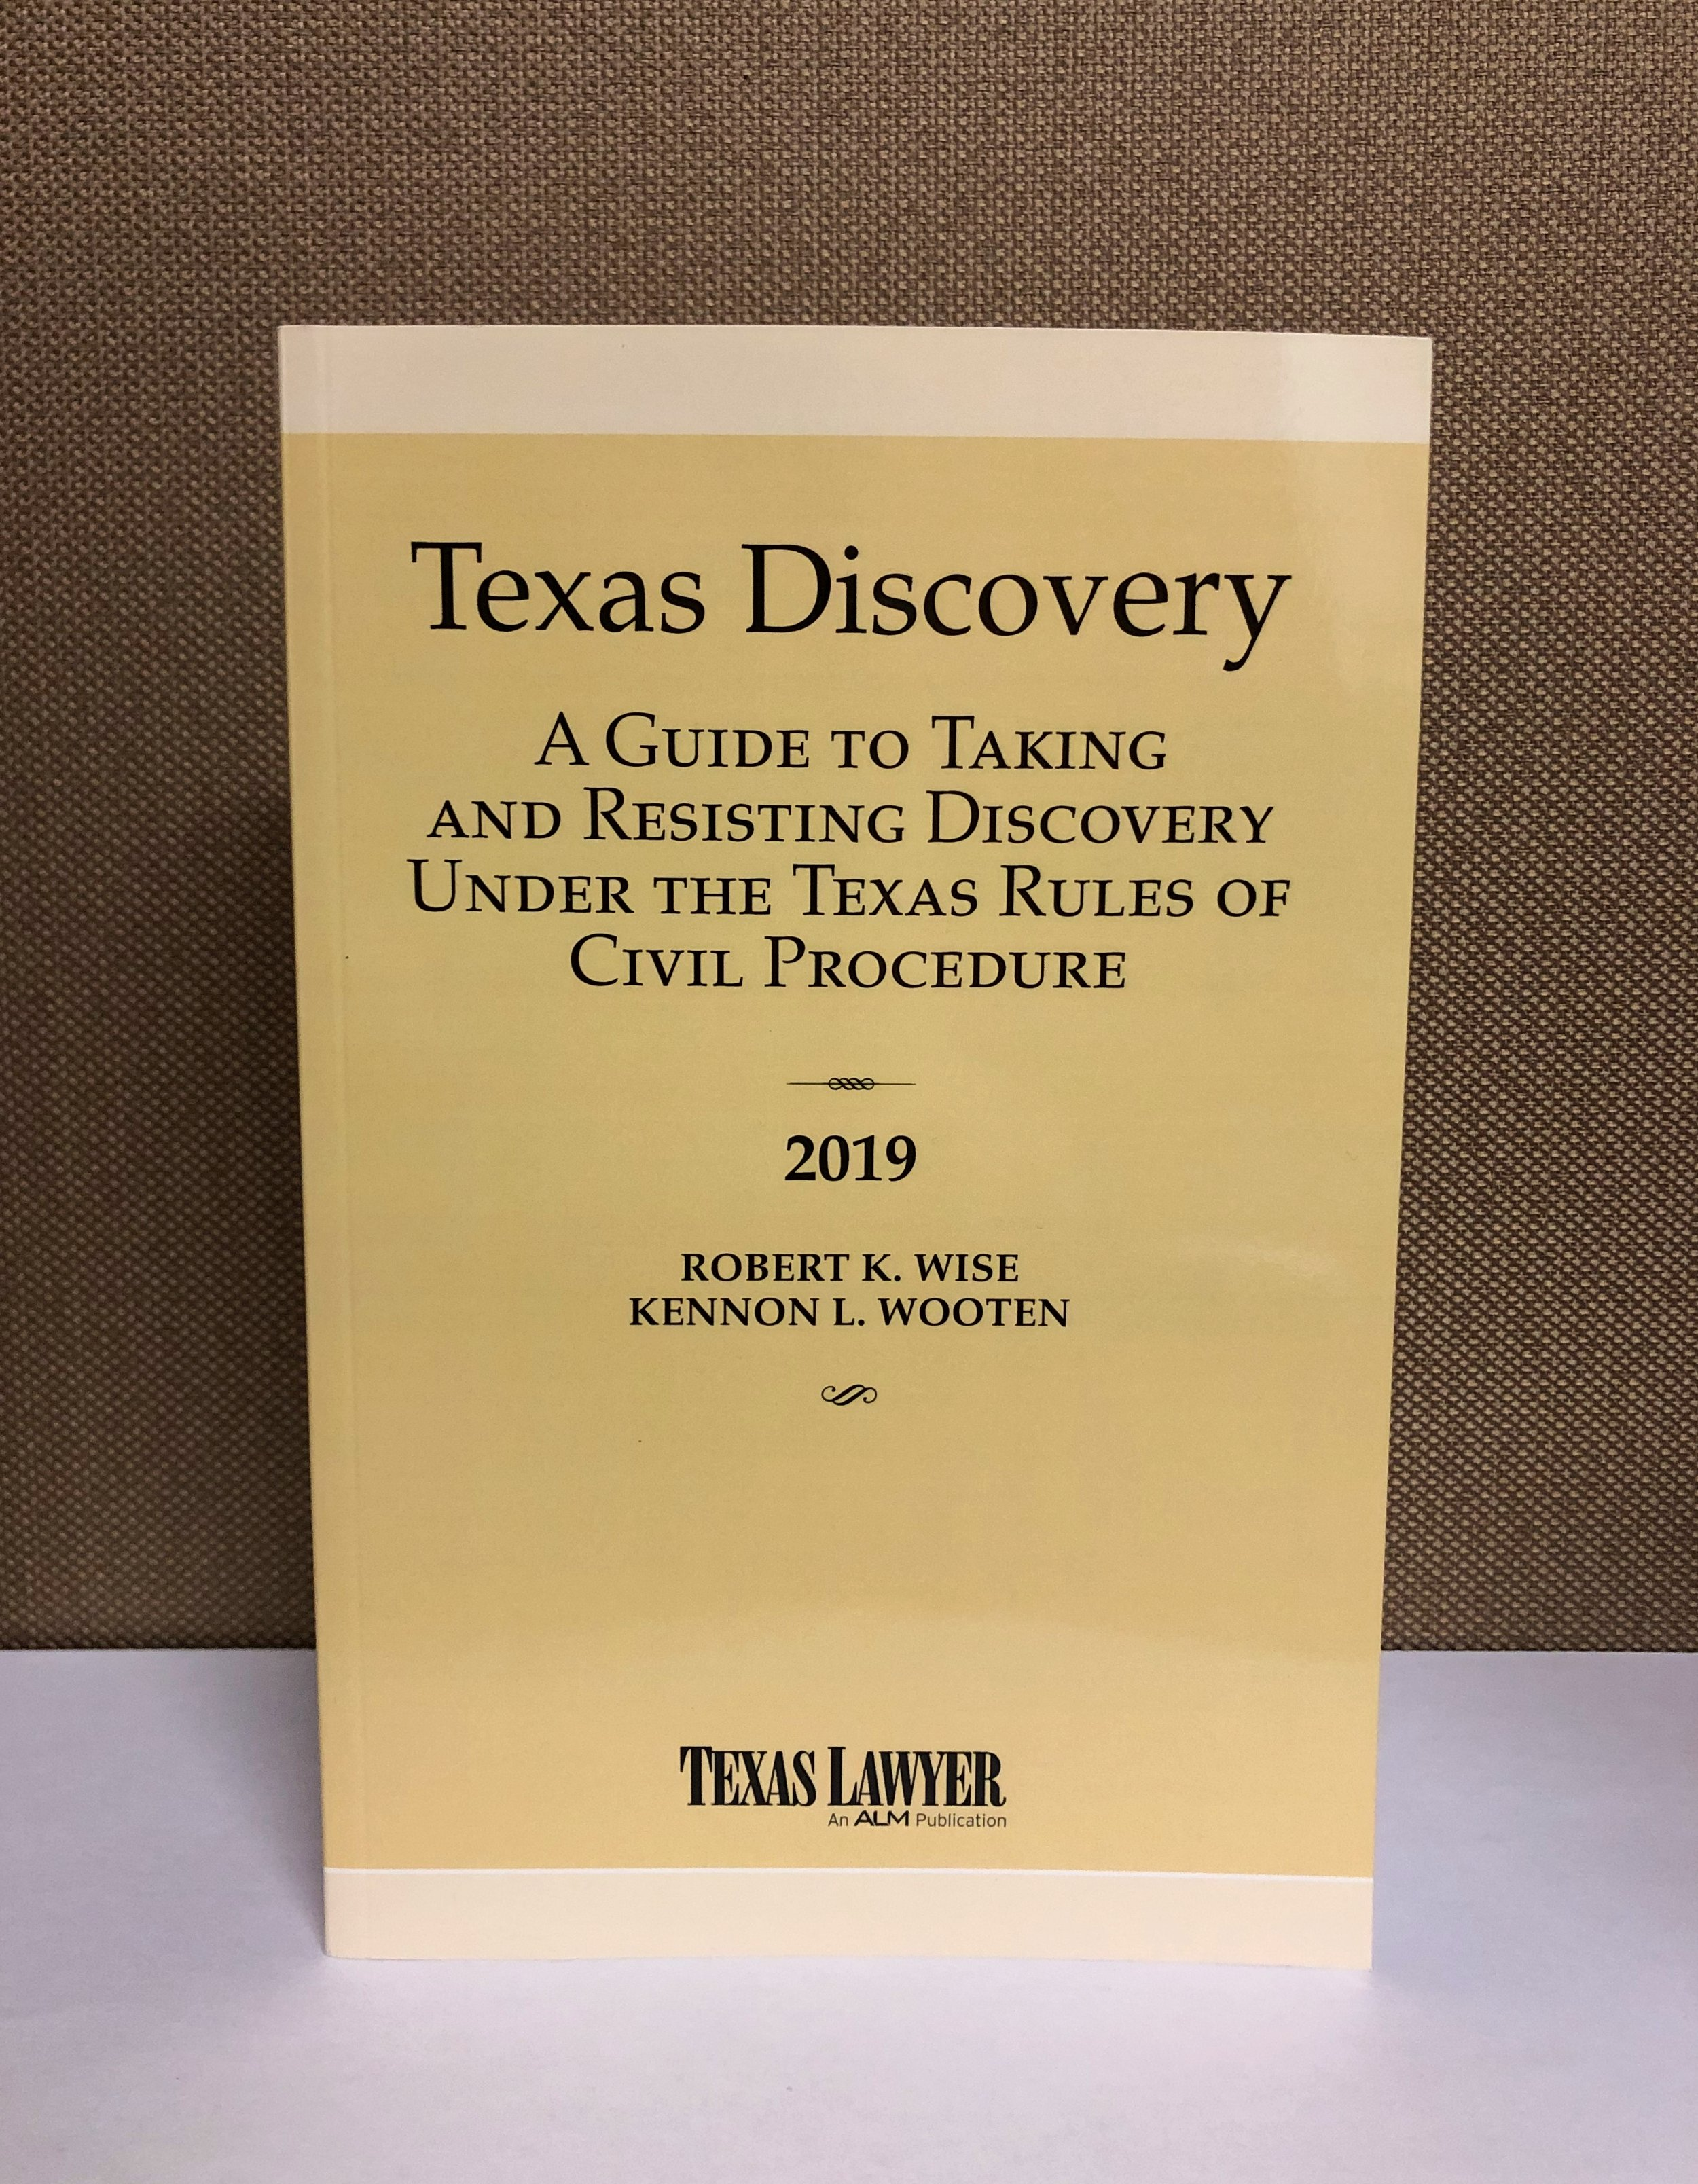 By Robert K. Wise and Kennon L. Wooten  Published by Texas Lawyer, an ALM Publication  KFT 1737 .W57 2019  Photo Credit: Helen Hartman